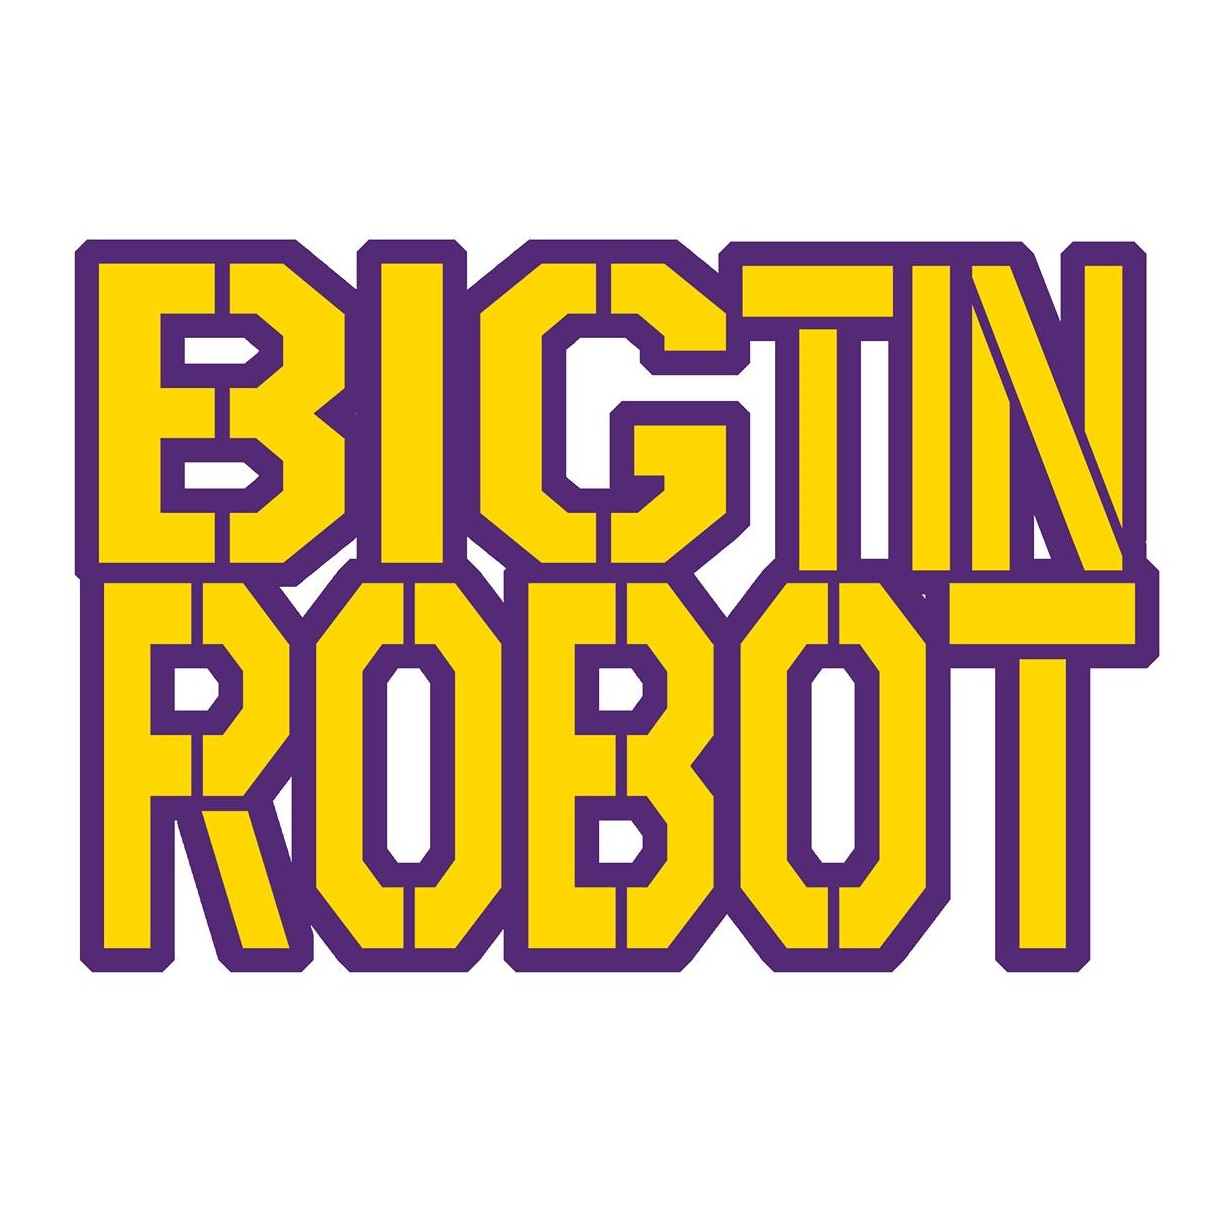 Big Tin Robot Toys and Collectibles